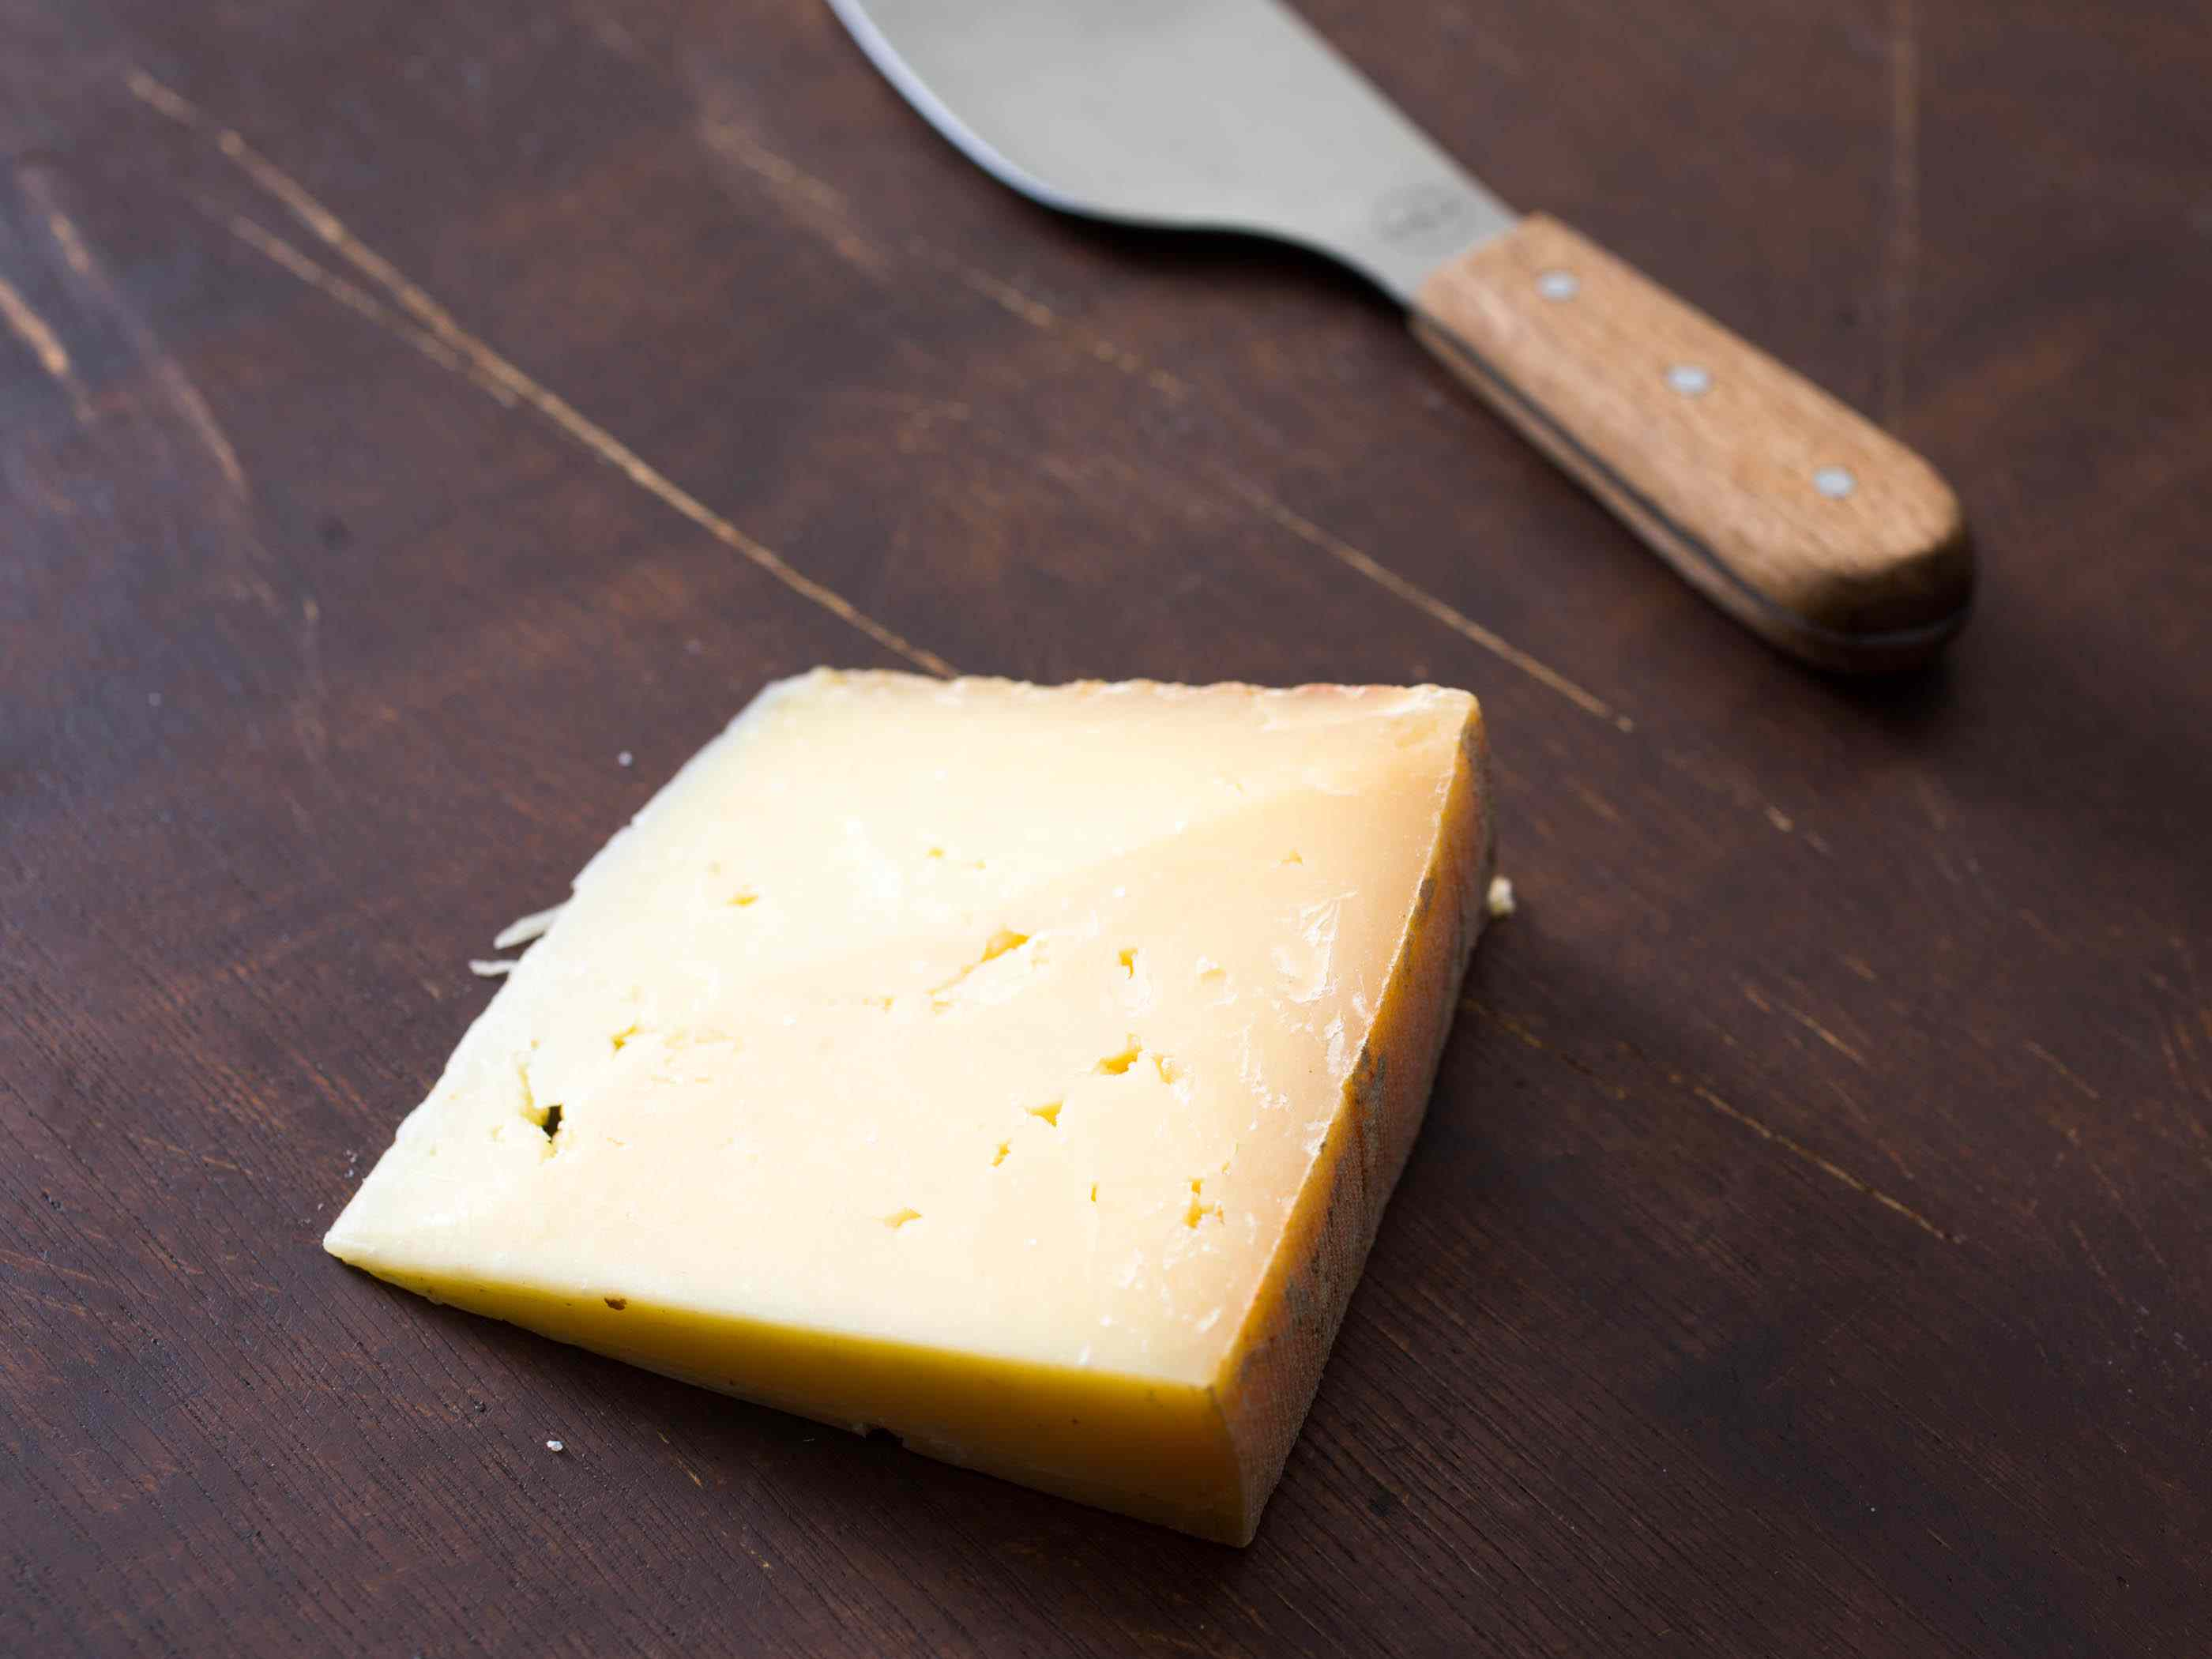 20141121-midwestern-cheese-milton-creamery-florys-truckle-vicky-wasik-1.jpg